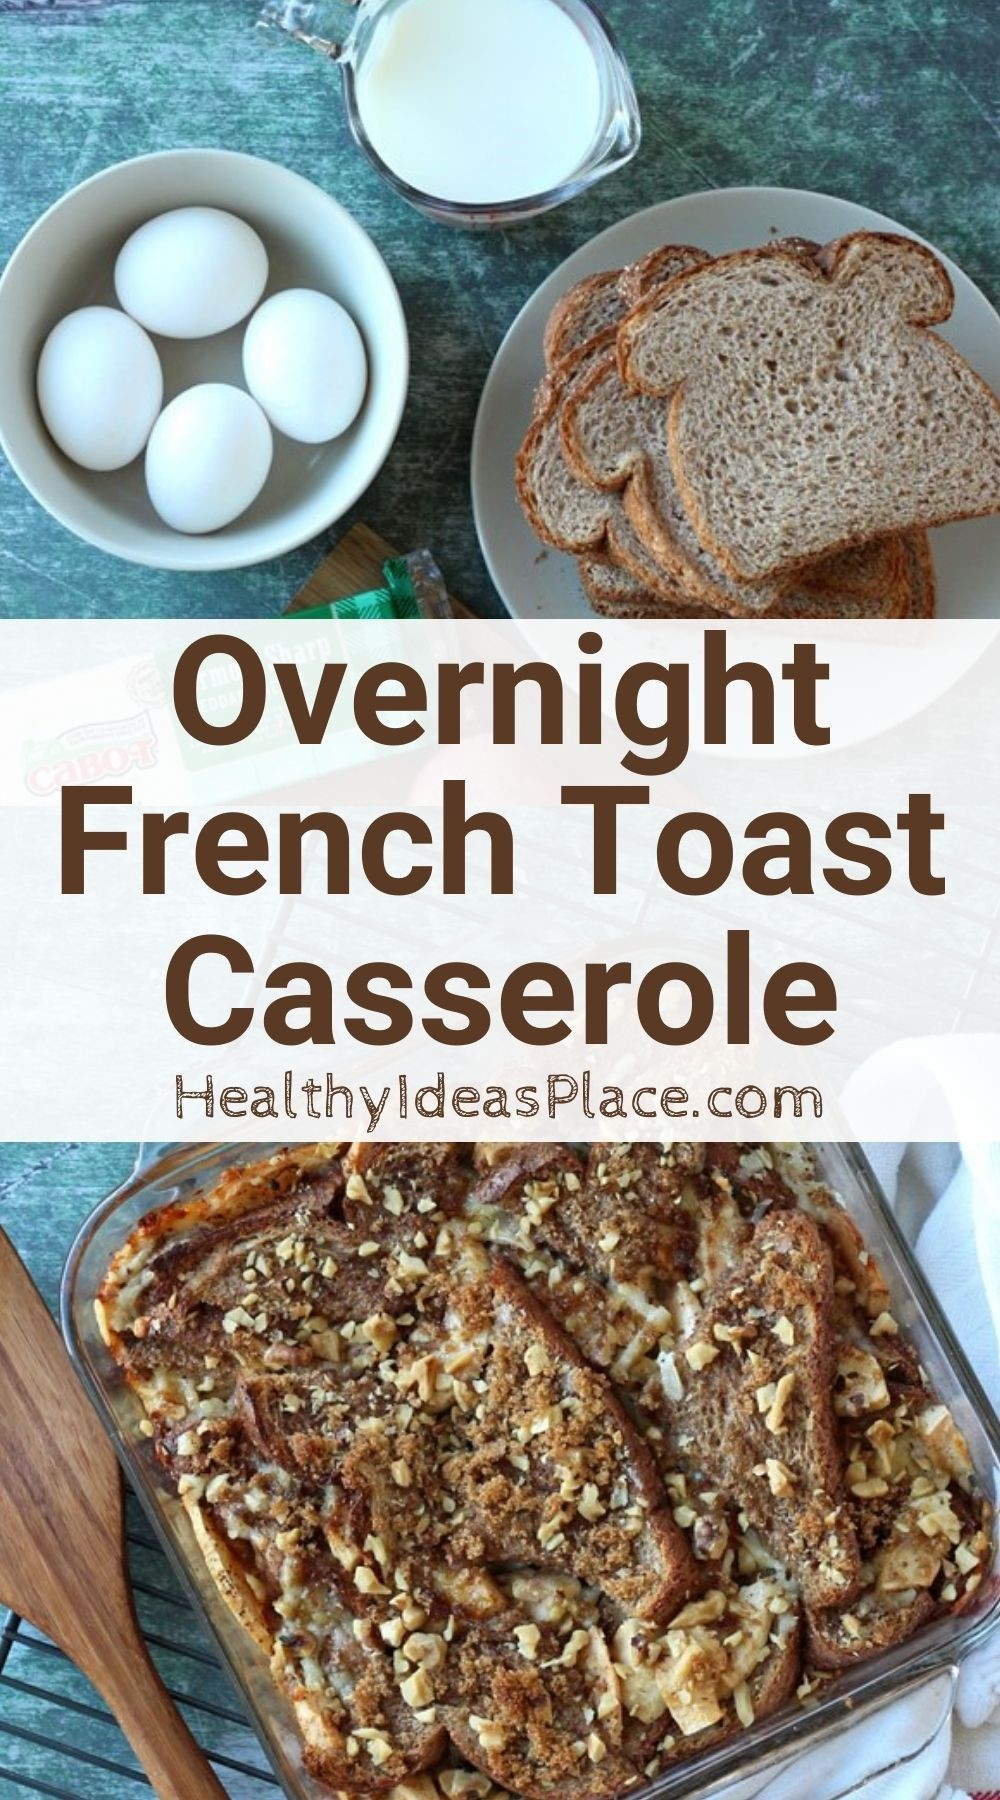 Collage picture of French toast breakfast casserole and ingredients of eggs, bread and milk